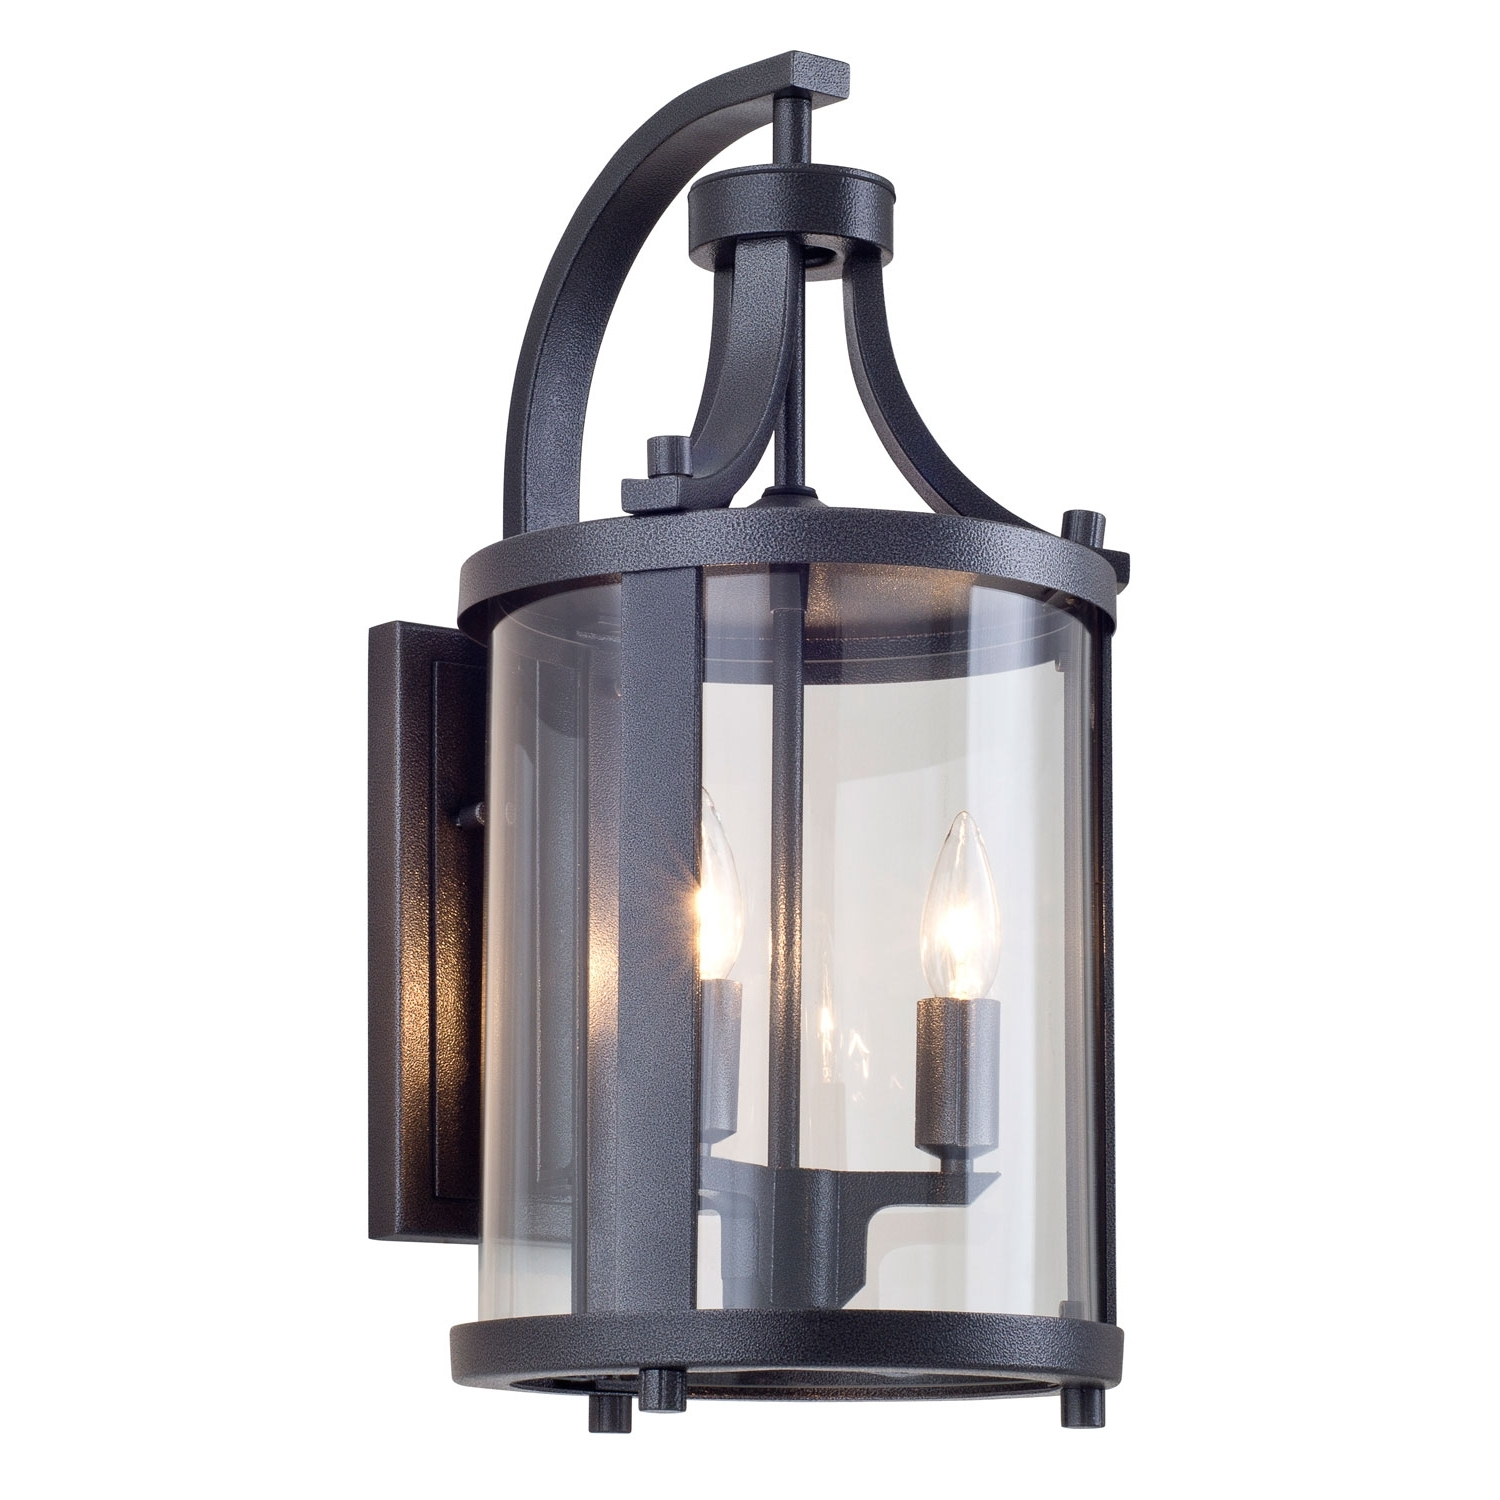 Outdoor Exterior Lanterns In Latest Industrial Outdoor Light Fittings Exterior Pendant Lighting Uk (View 12 of 20)